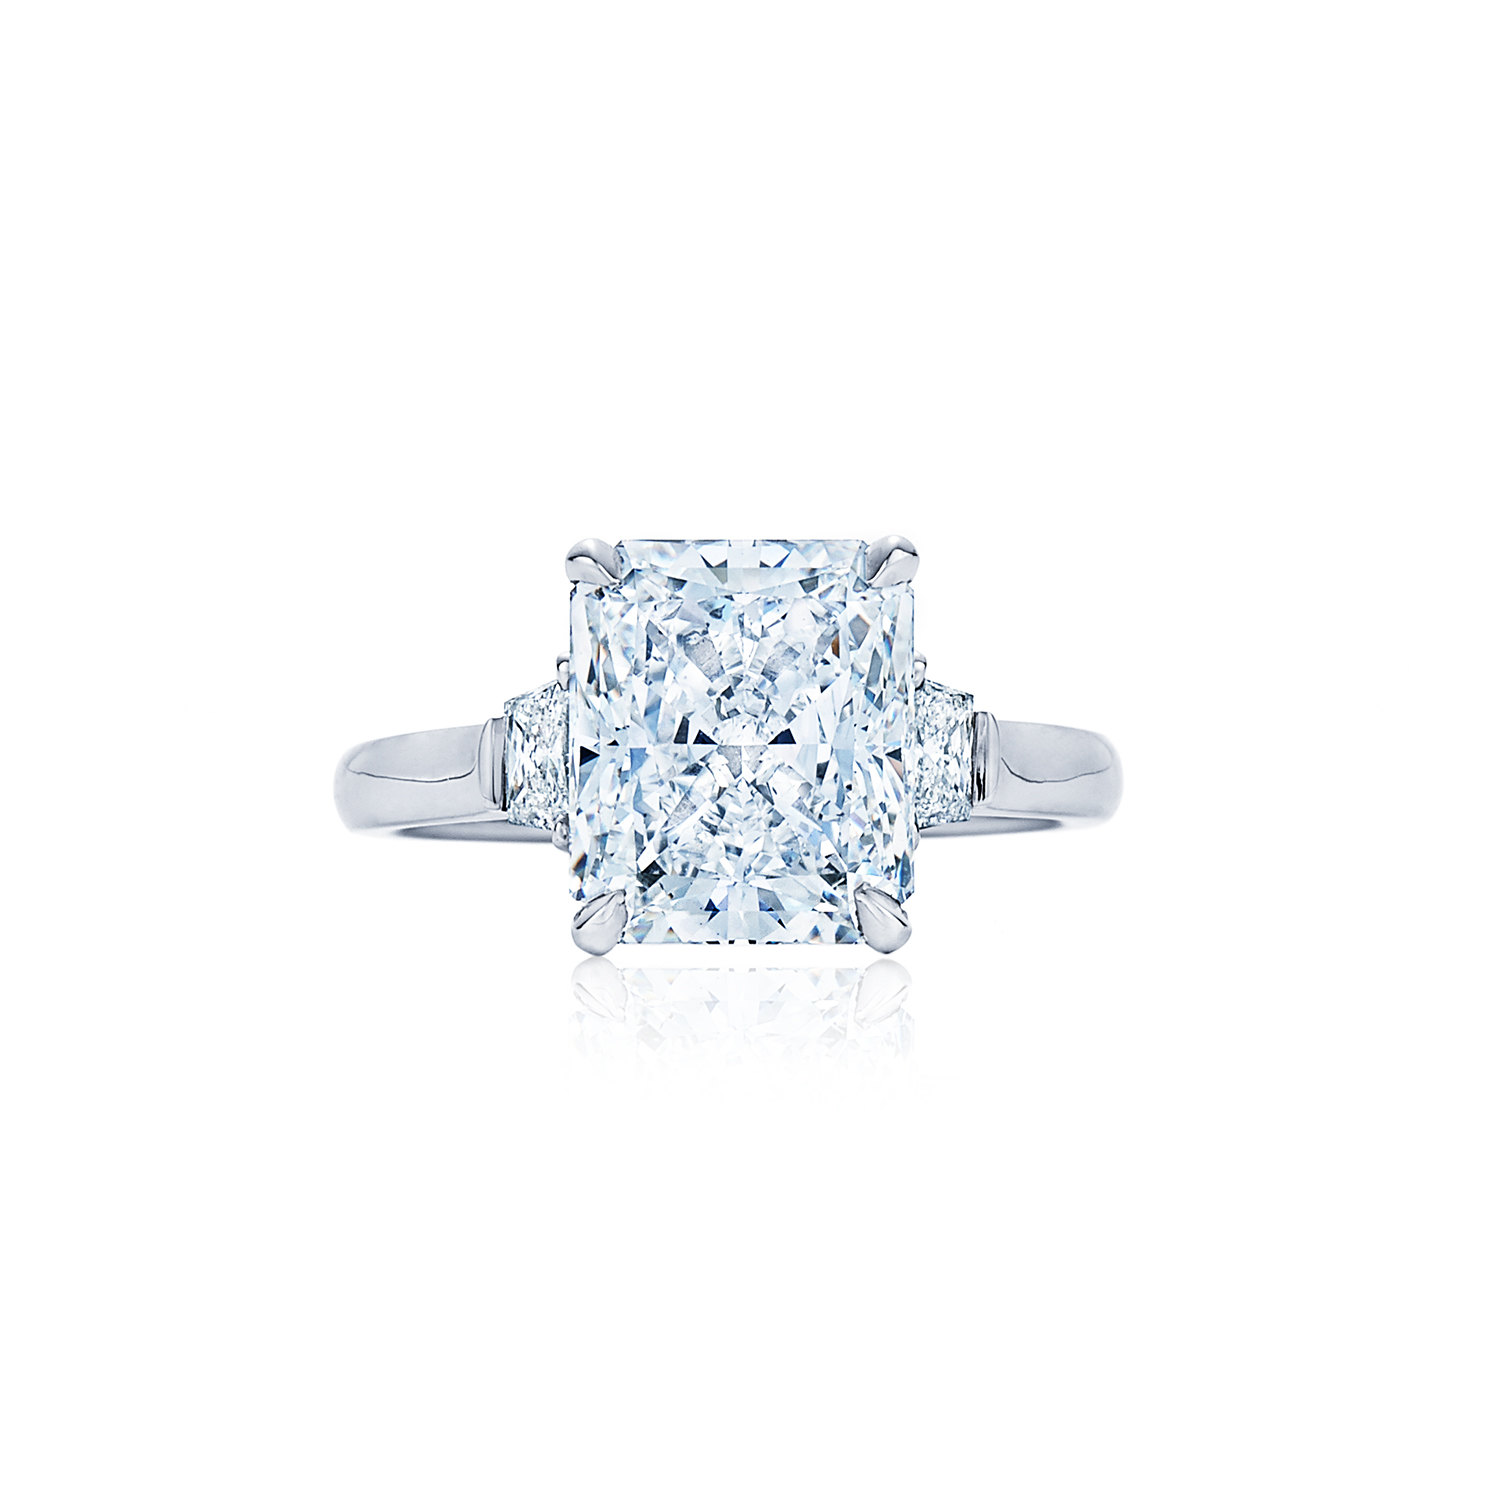 diamond ascot diamonds rose how education gold to value shape star ring select radiant pear at a